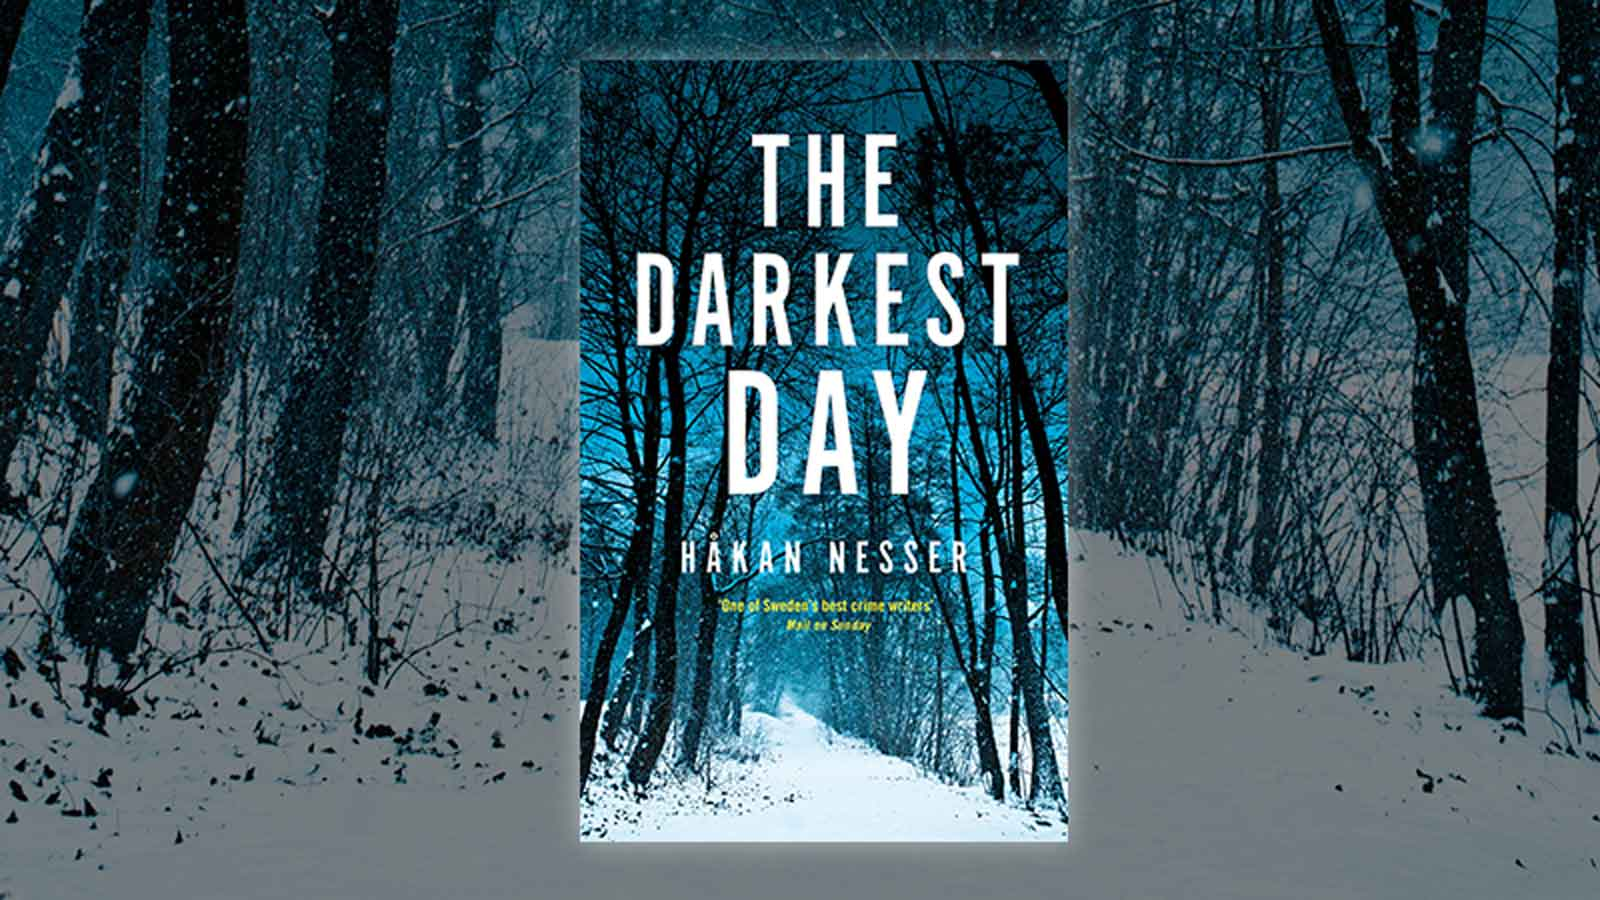 Book cover of The Darkest Day against the background of snowy woodland